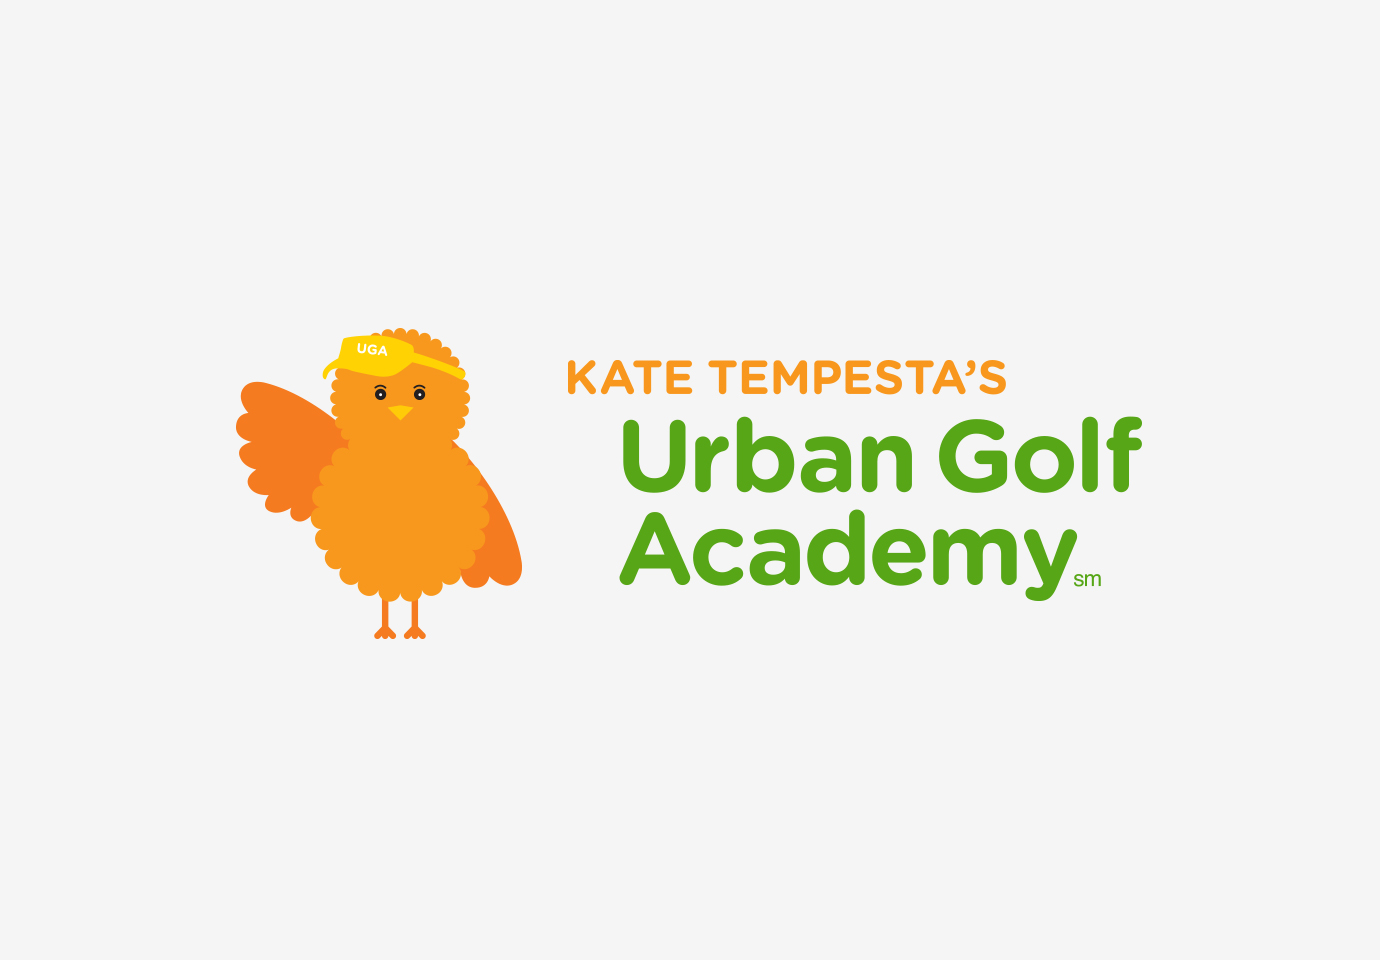 """Kate Tempesta's Urban Golf Academy's logo, and the orange """"birdie"""" brand symbol and mascot waving a wing."""